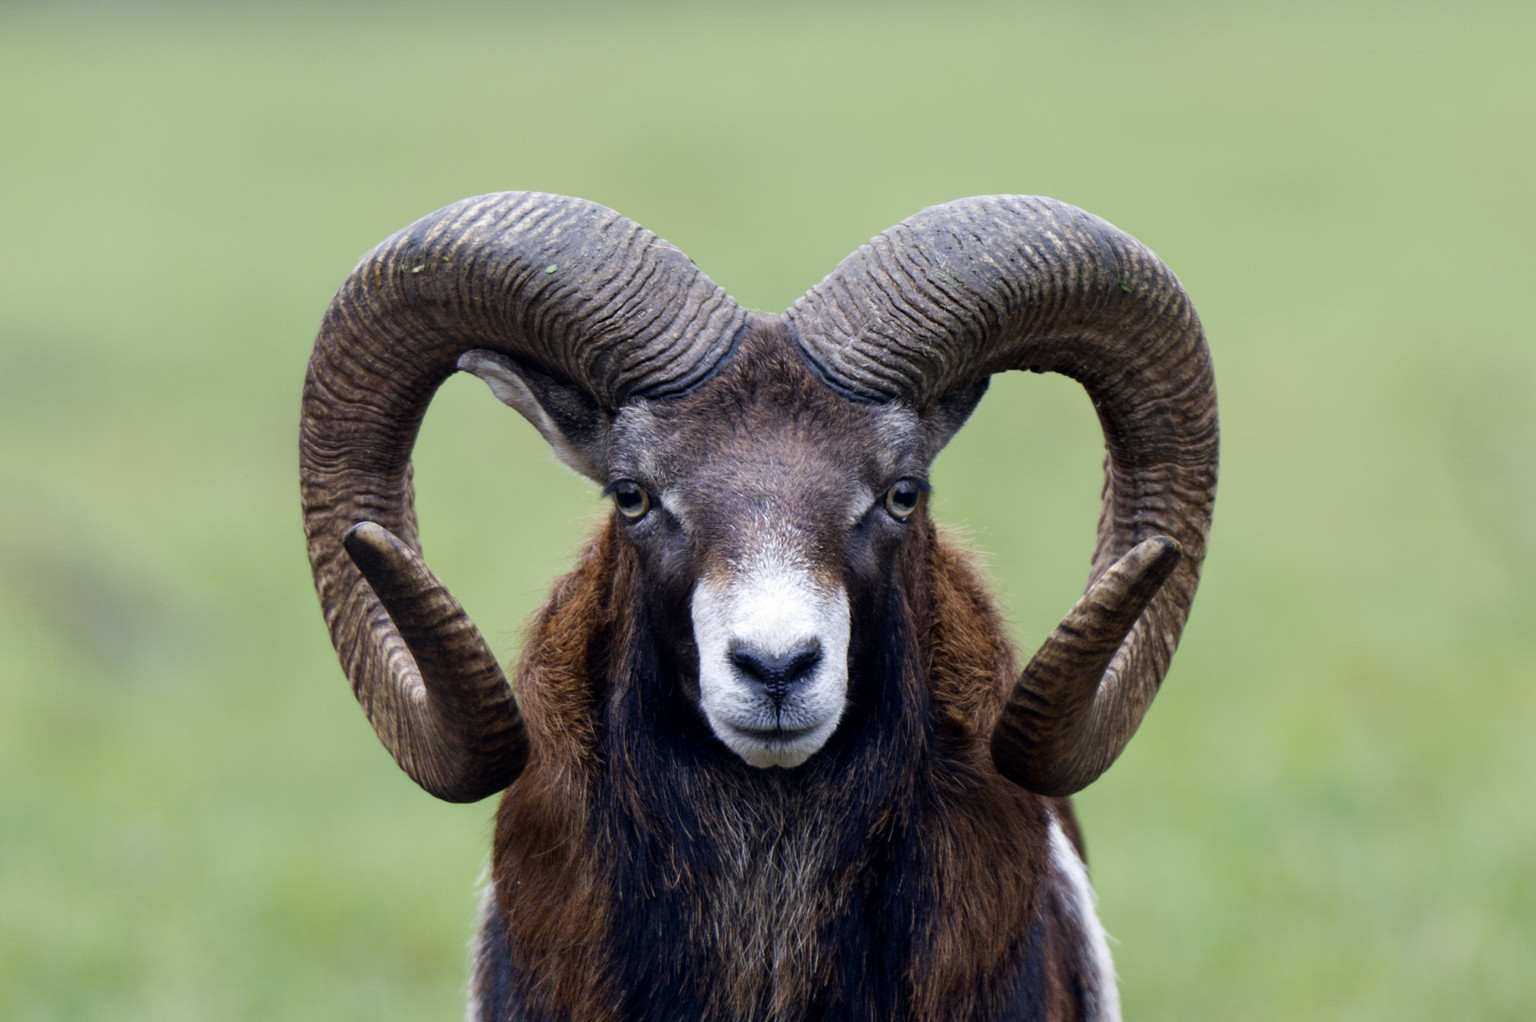 Sheep Study Shows Rams With Big Horns Get The Ewe But